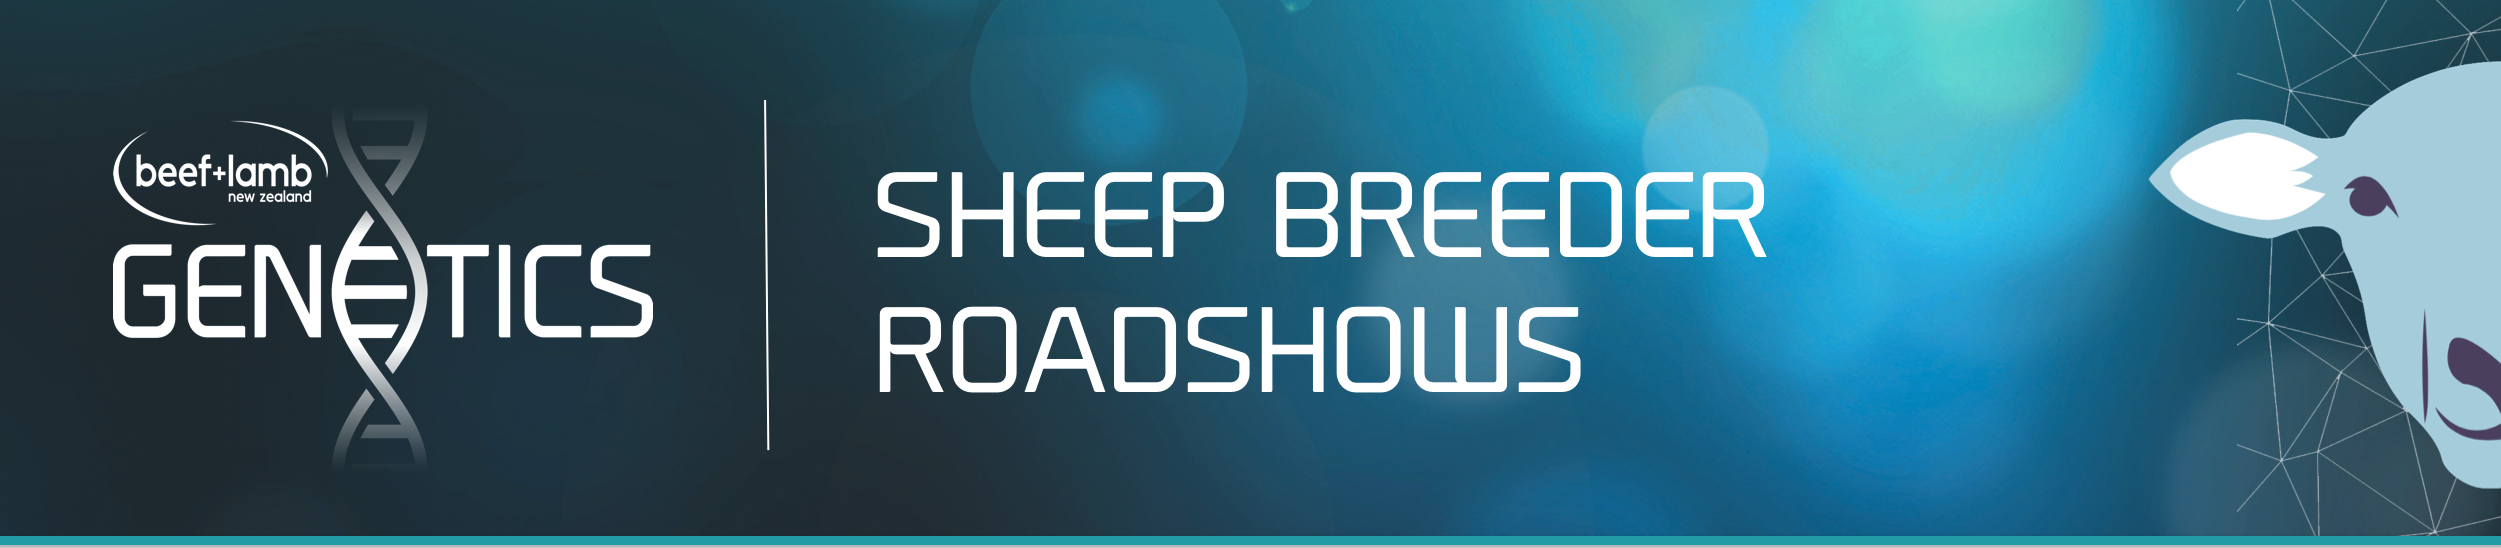 Sheep Breeder Roadshows